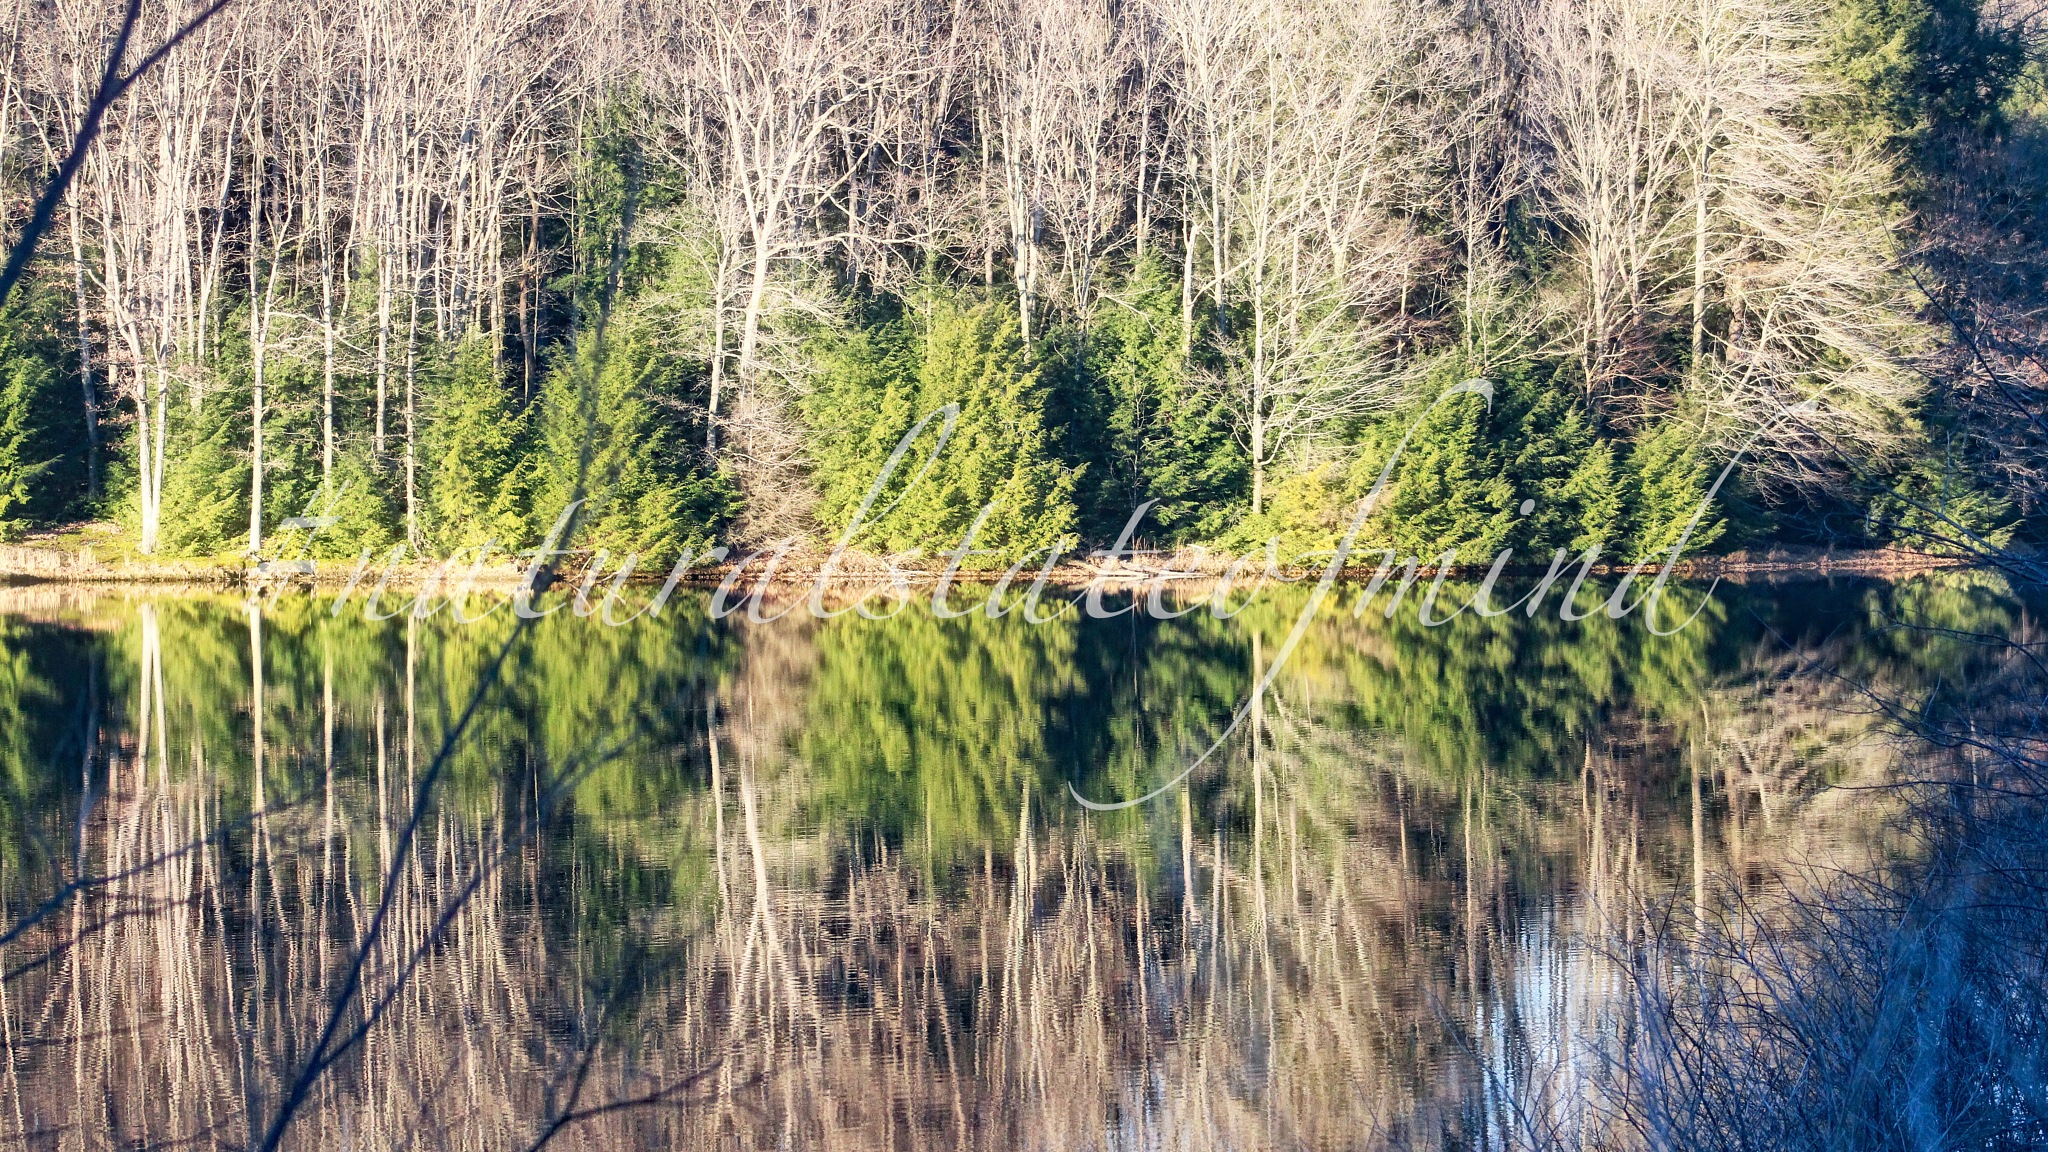 November Reflections by Natural State of Mind